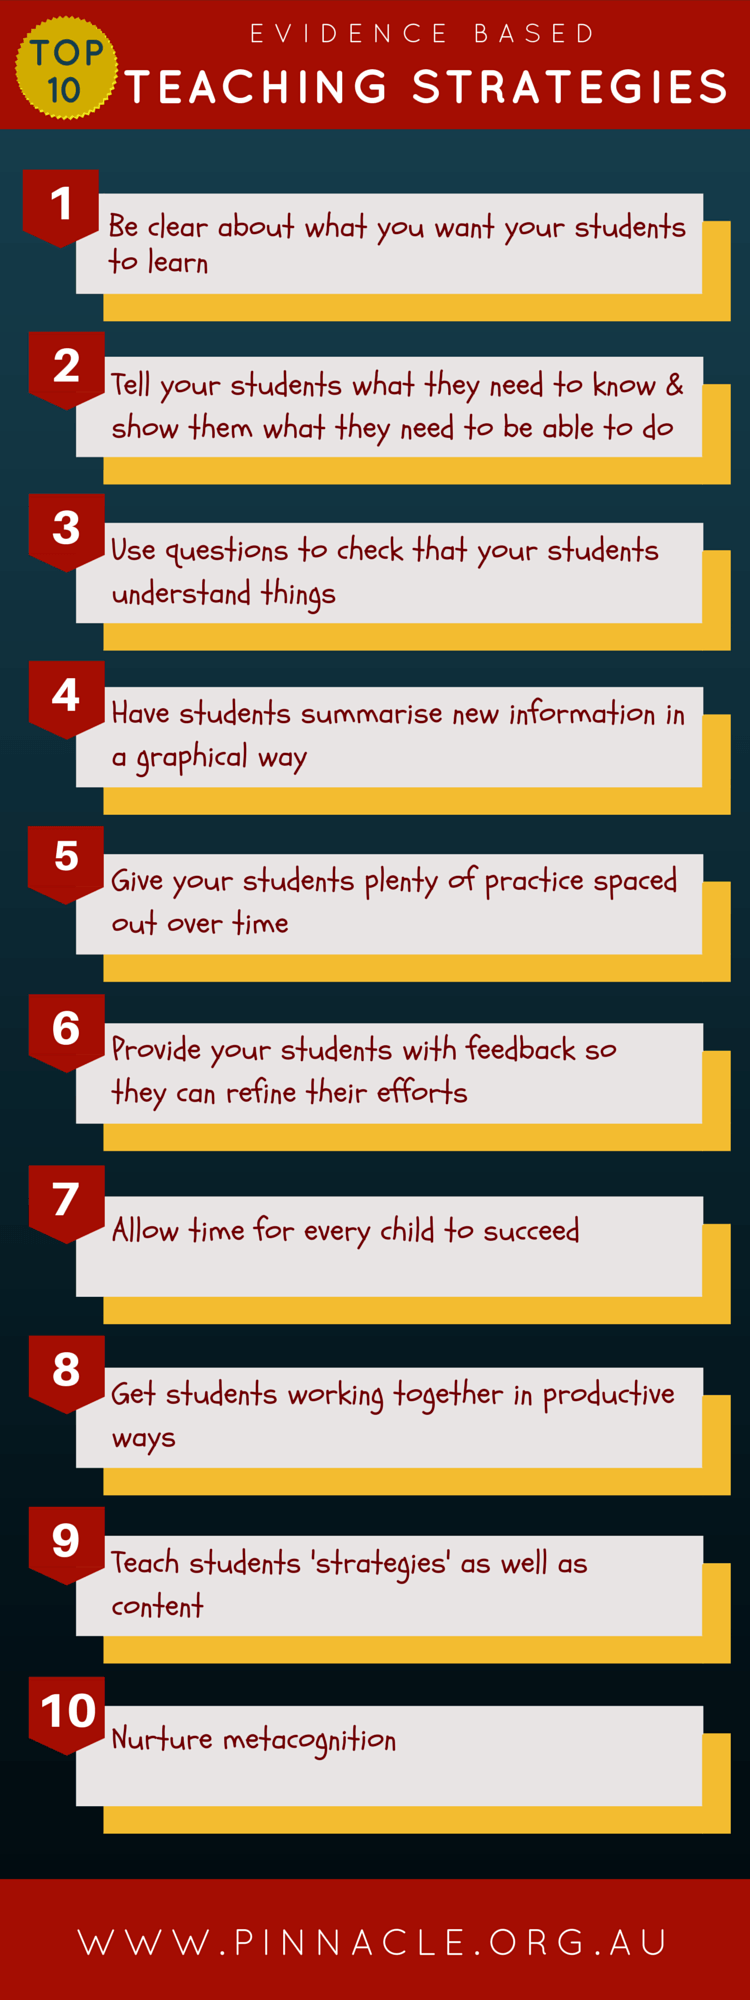 Top 10 Evidence Based Teaching Strategies Infographic